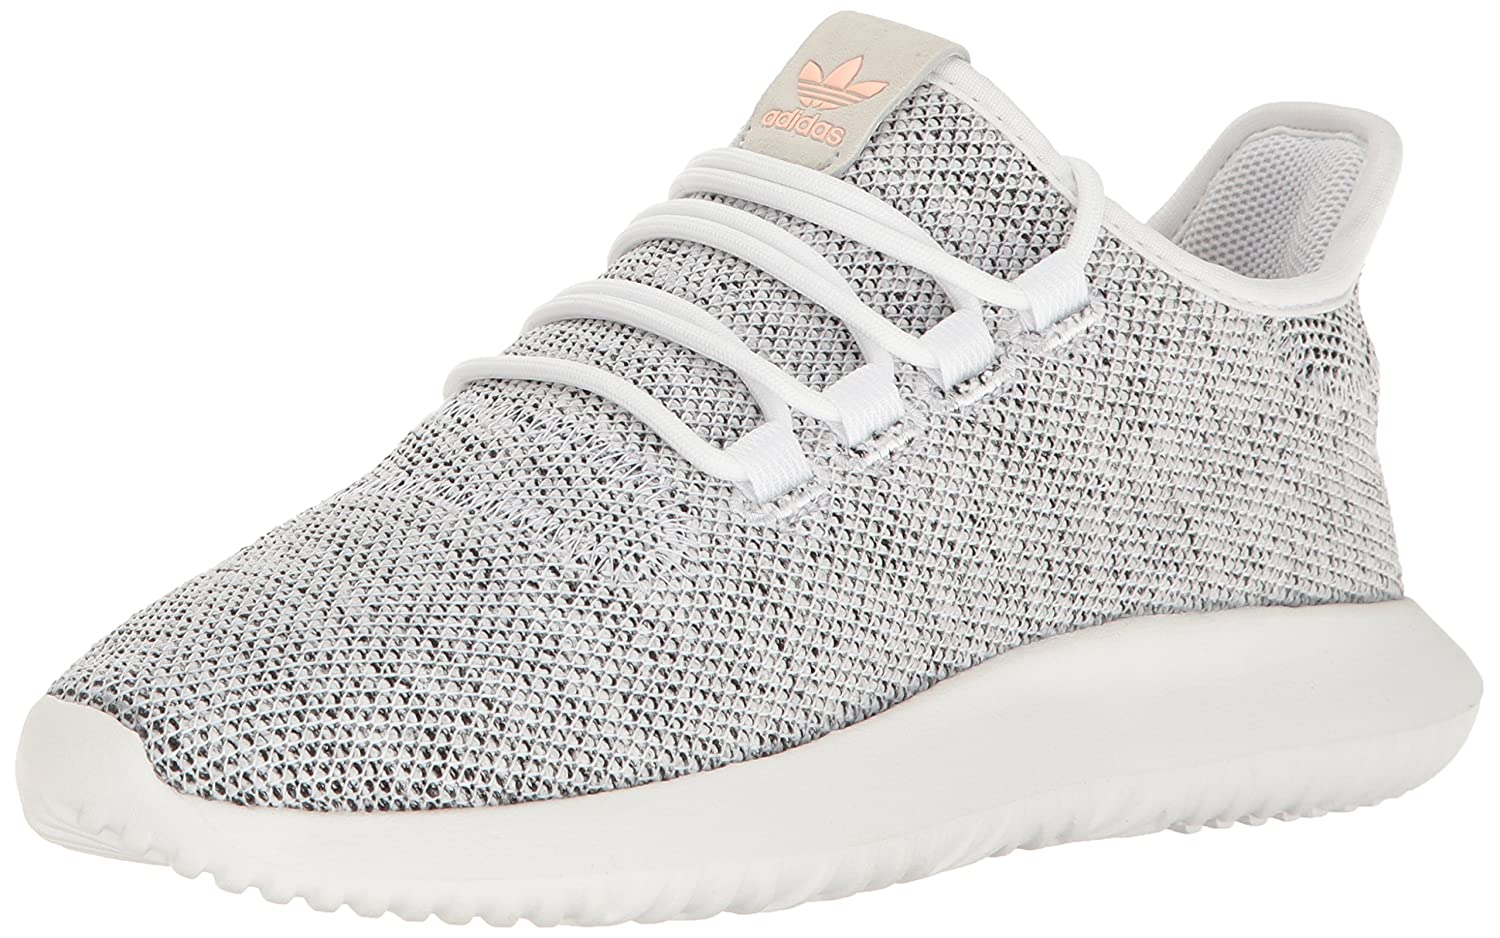 adidas Originals Women's Tubular Shadow W Fashion Sneaker B01LXC850J 11 M US|White/Pearl Grey/Haze Coral